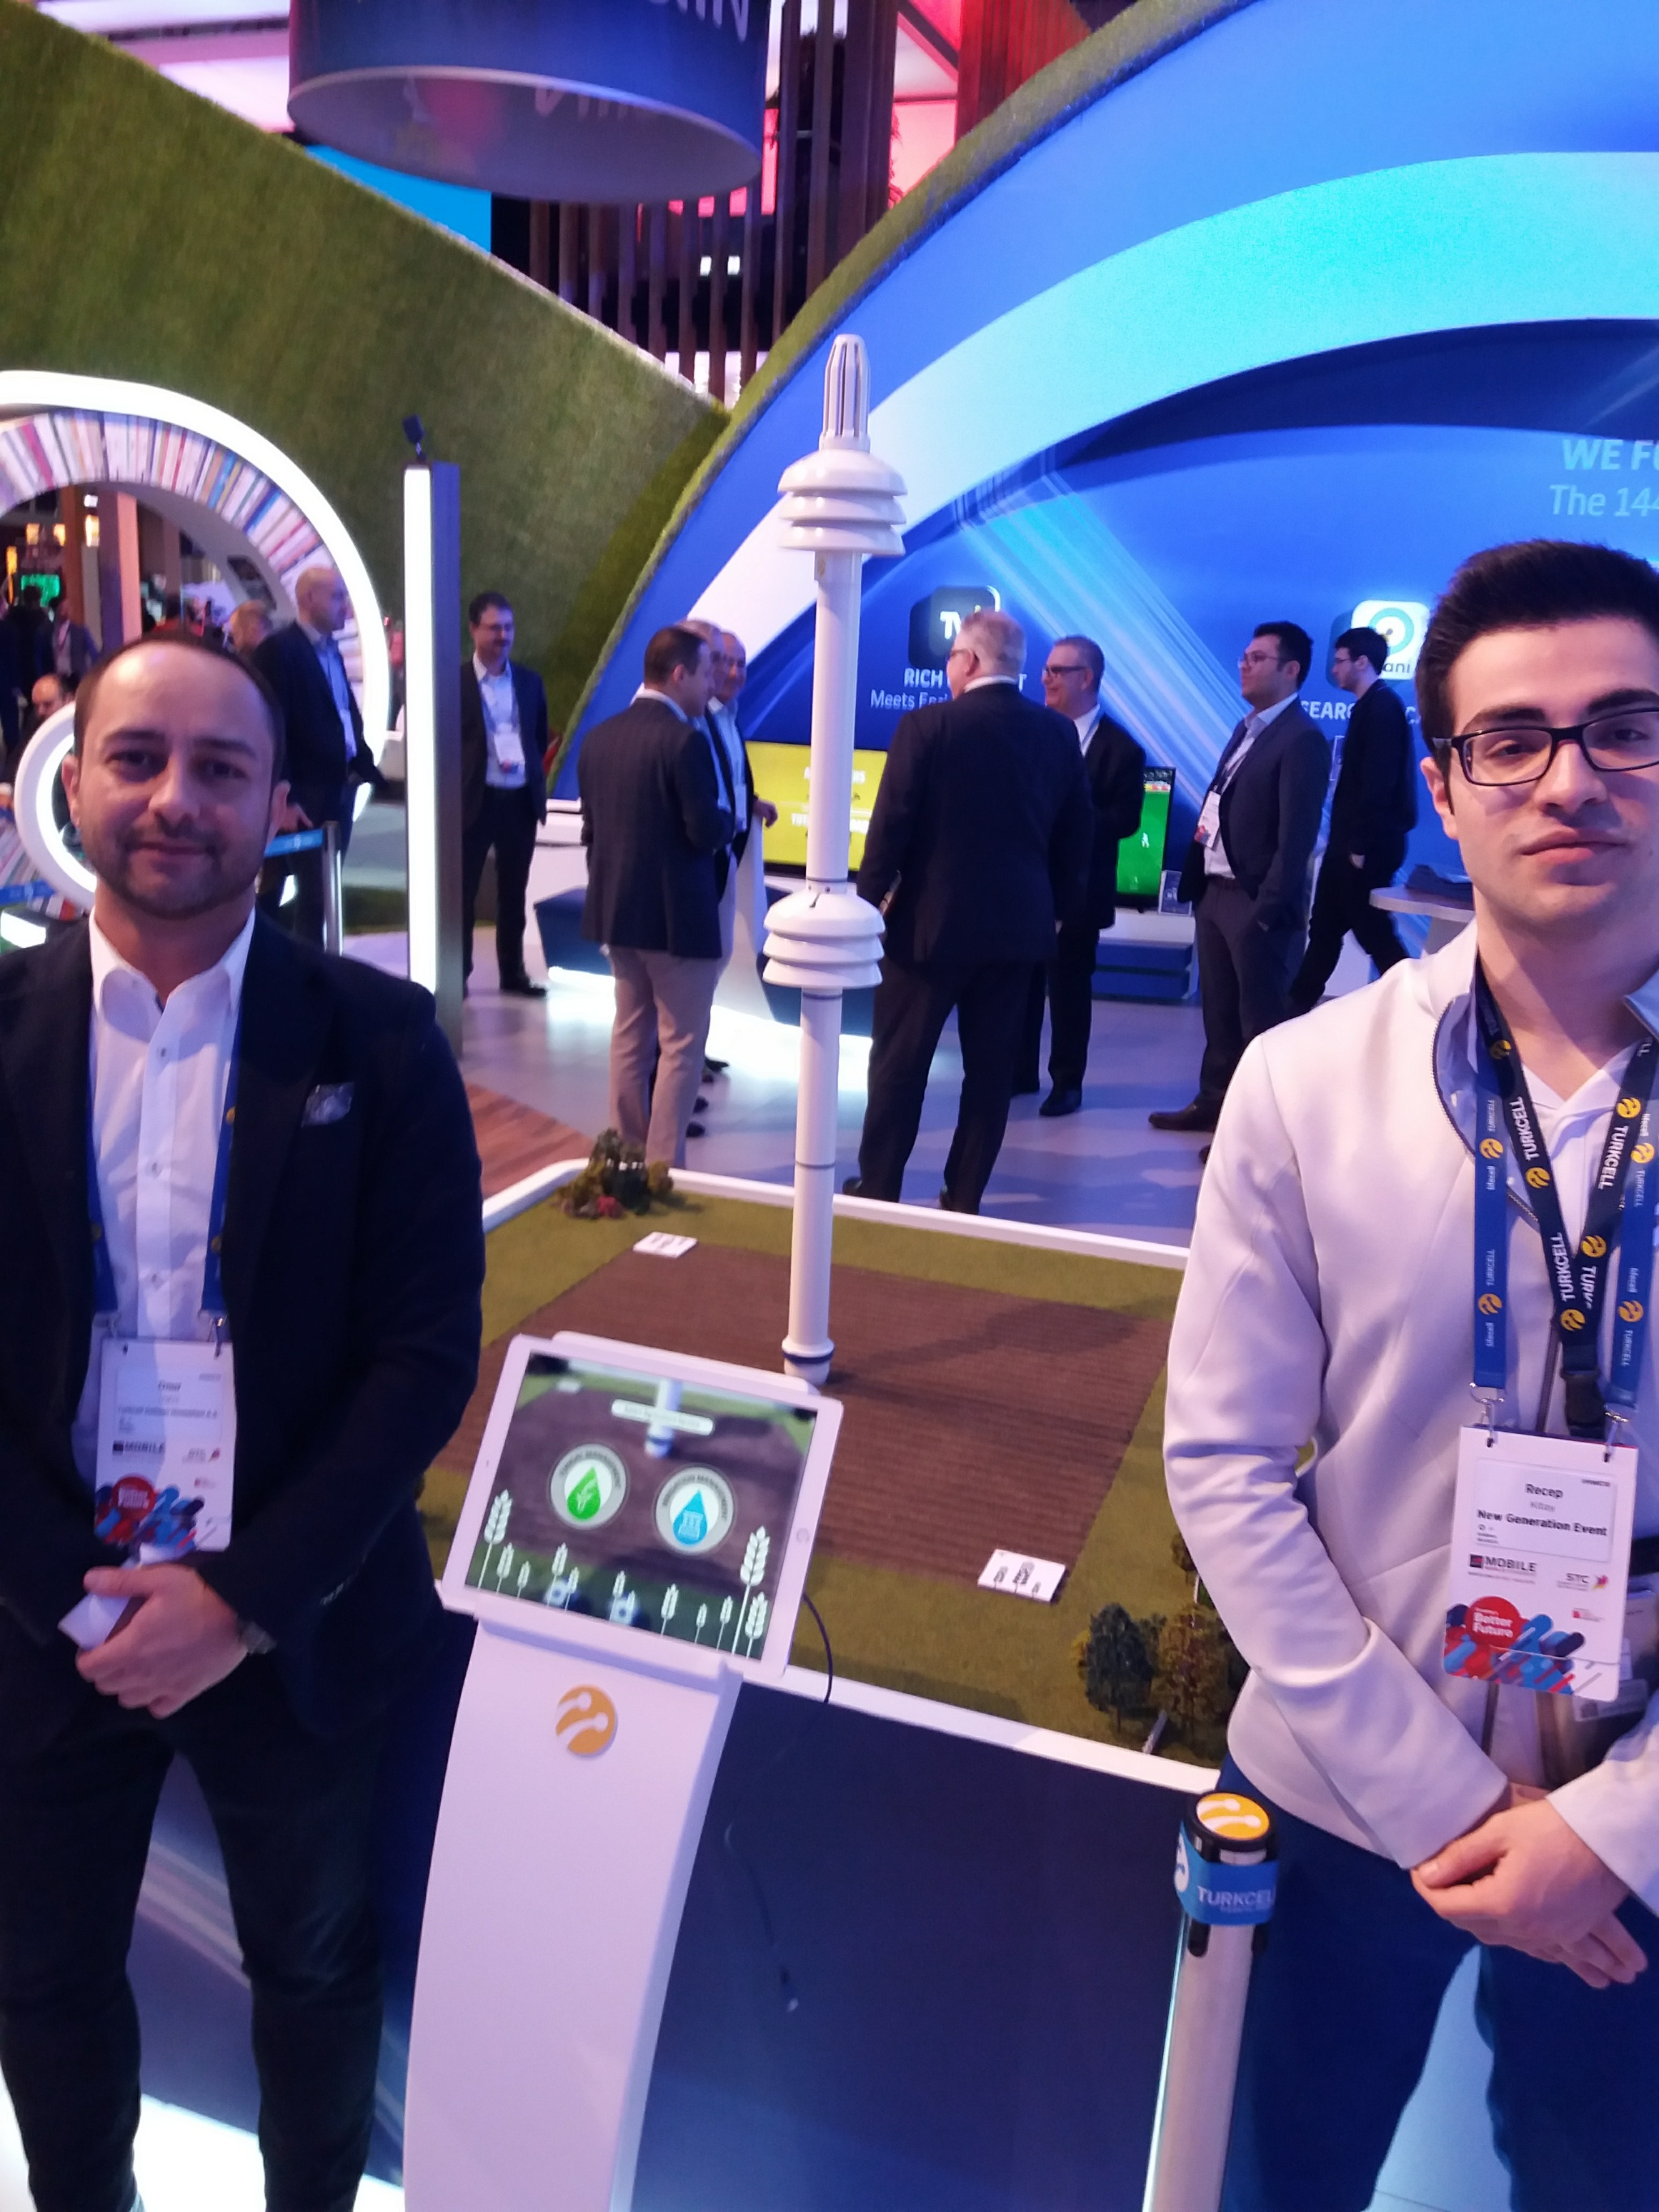 Turkcell had a great industrial IoT sensor solution for agriculture